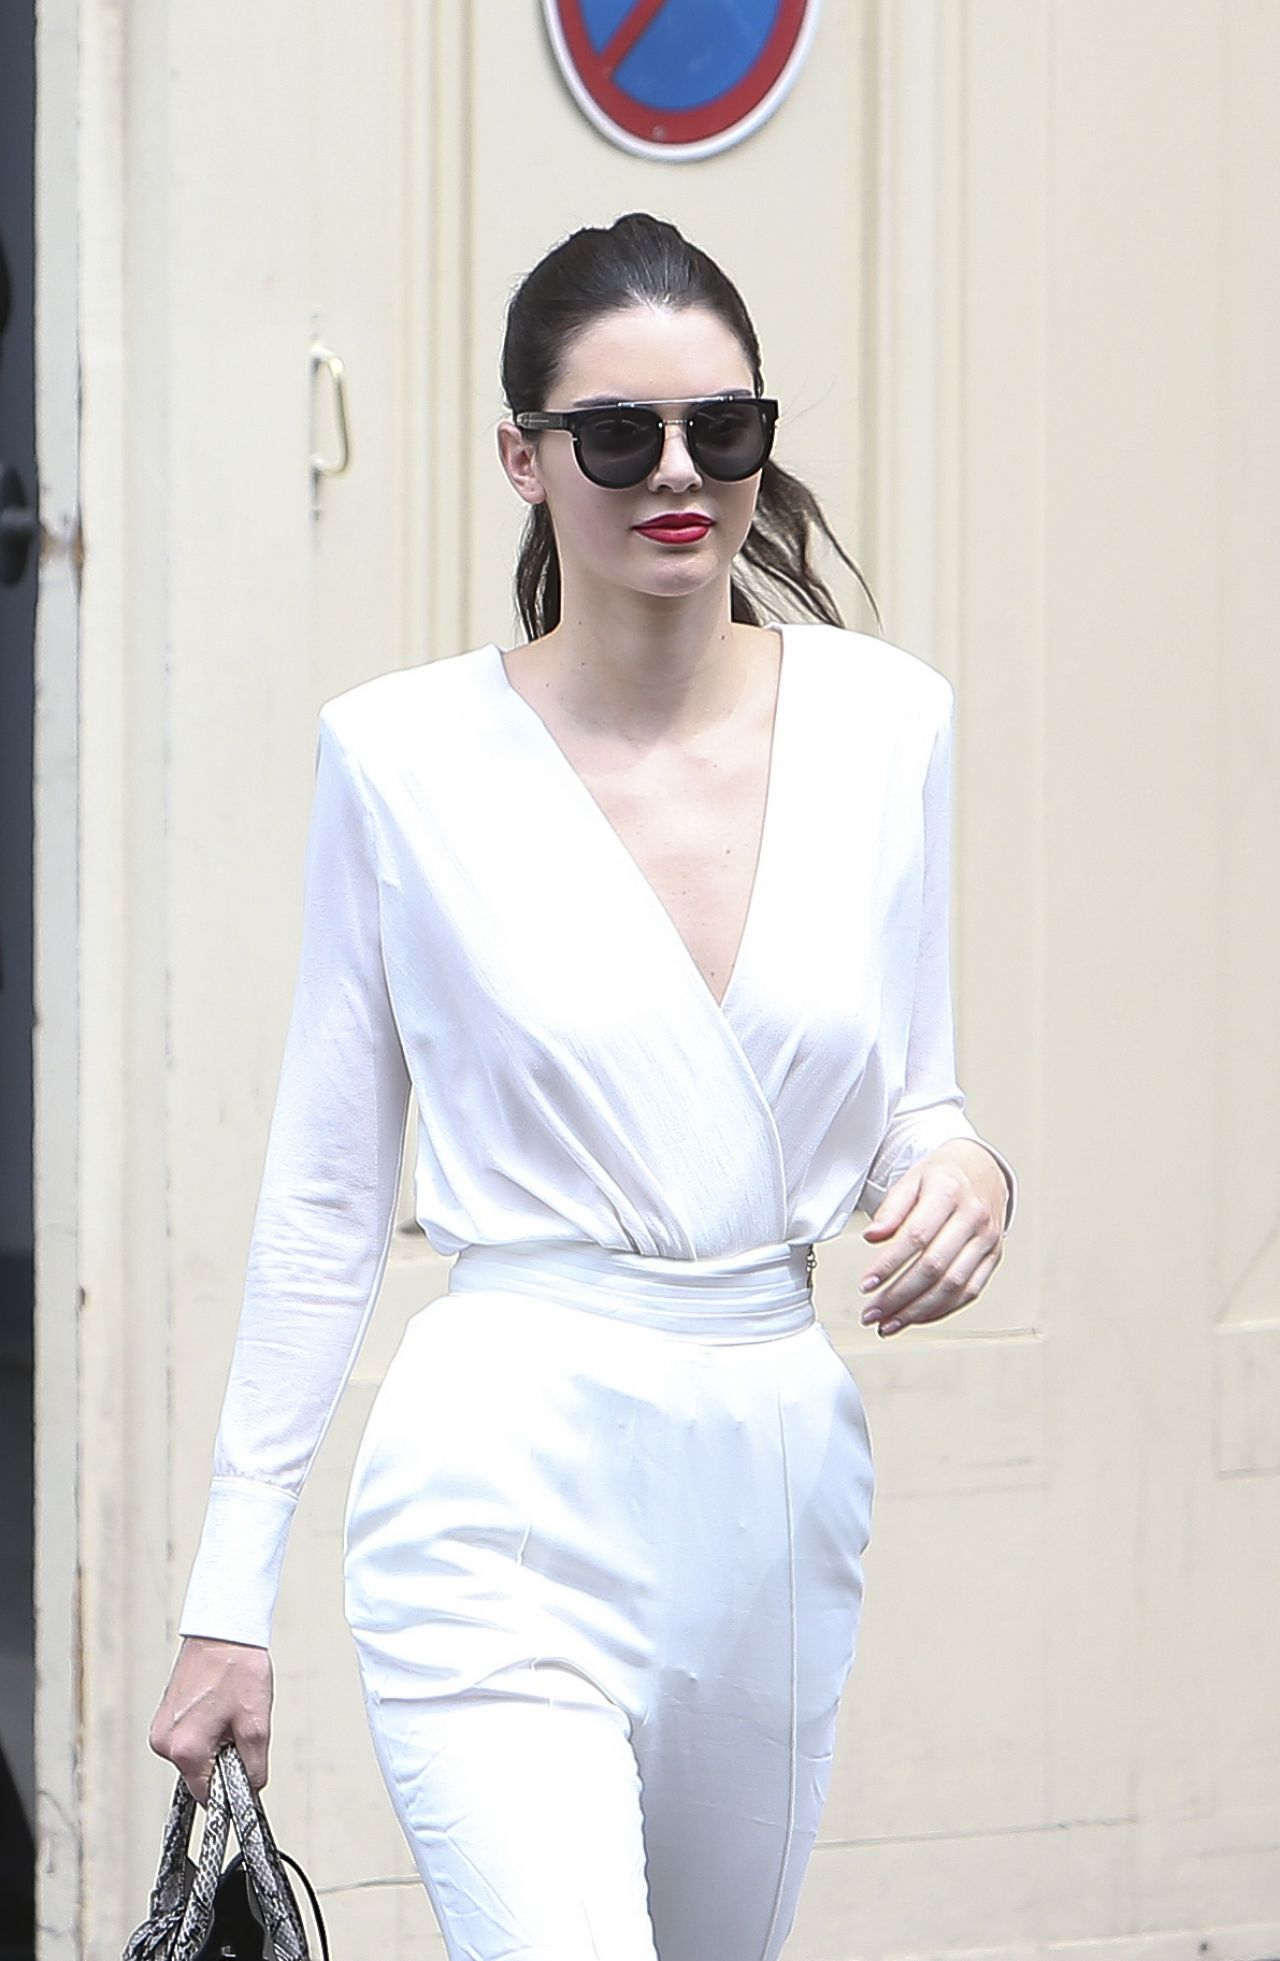 kendall-jenner-arriving-leaving-the-chanel-fashion-show-in-paris-july-2015_4